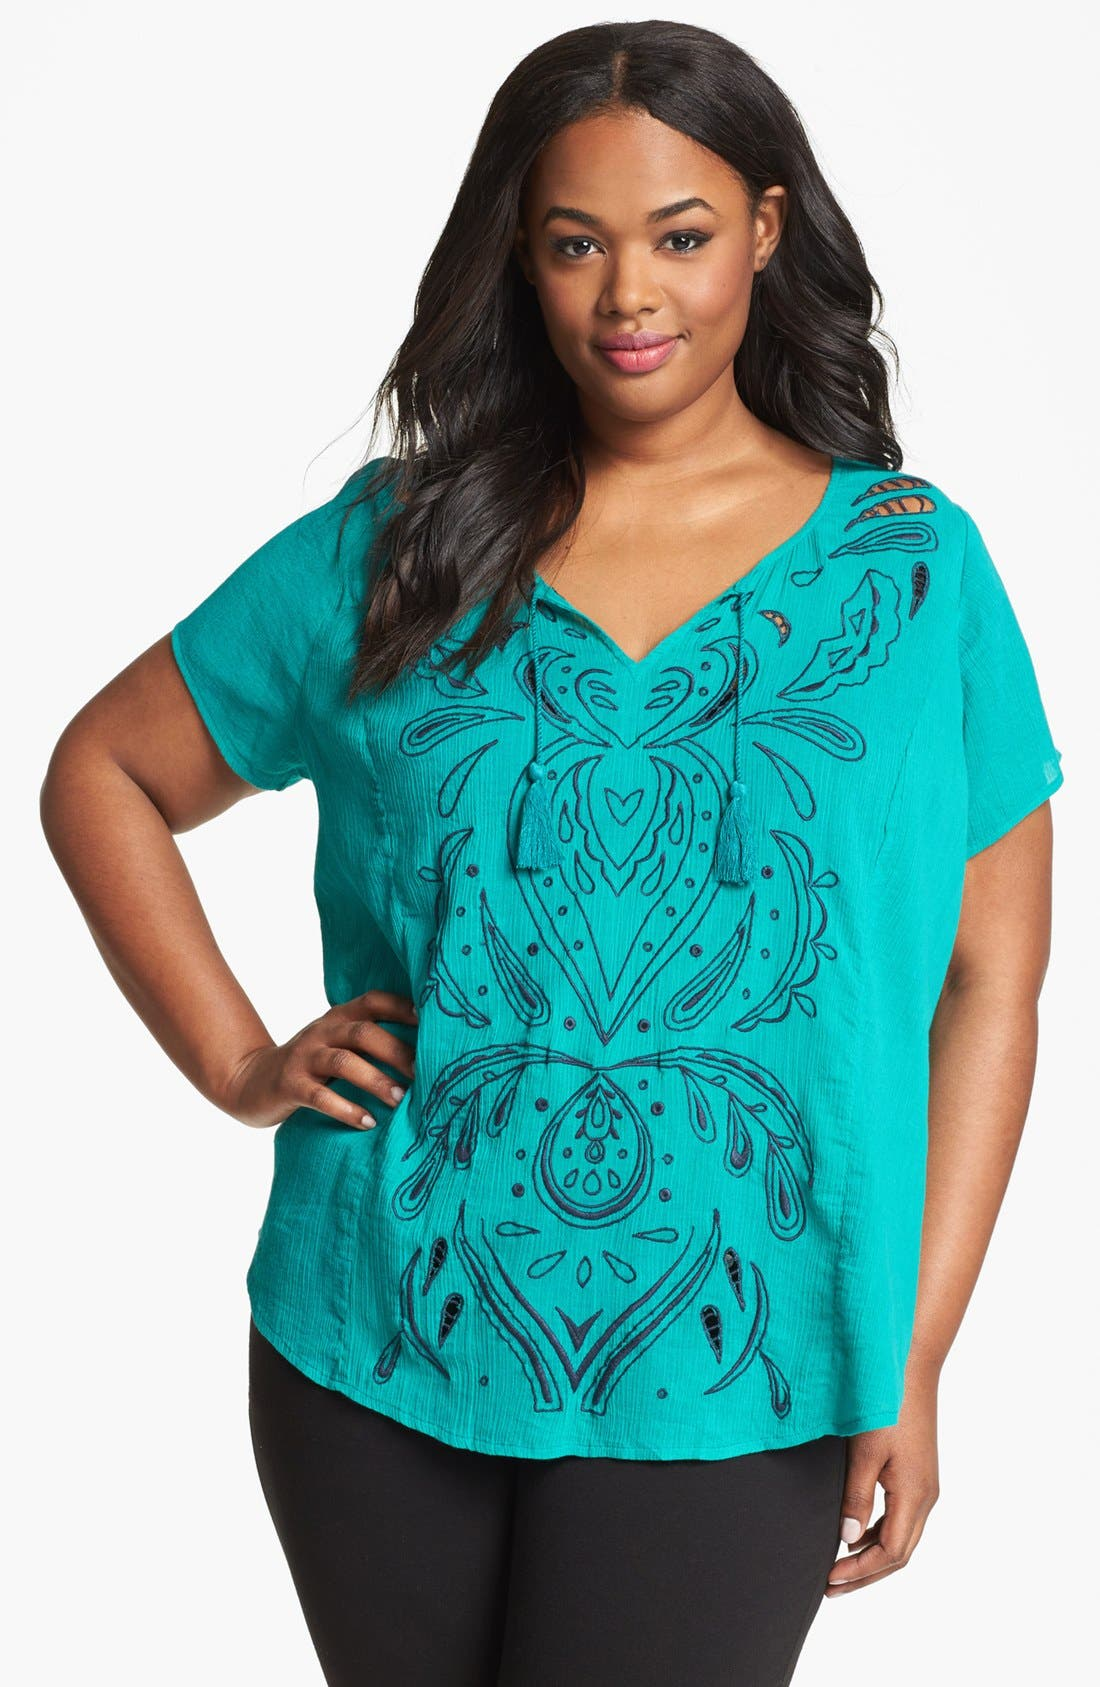 Alternate Image 1 Selected - Lucky Brand 'Juniper' Contrast Thread Cotton Top (Plus Size)